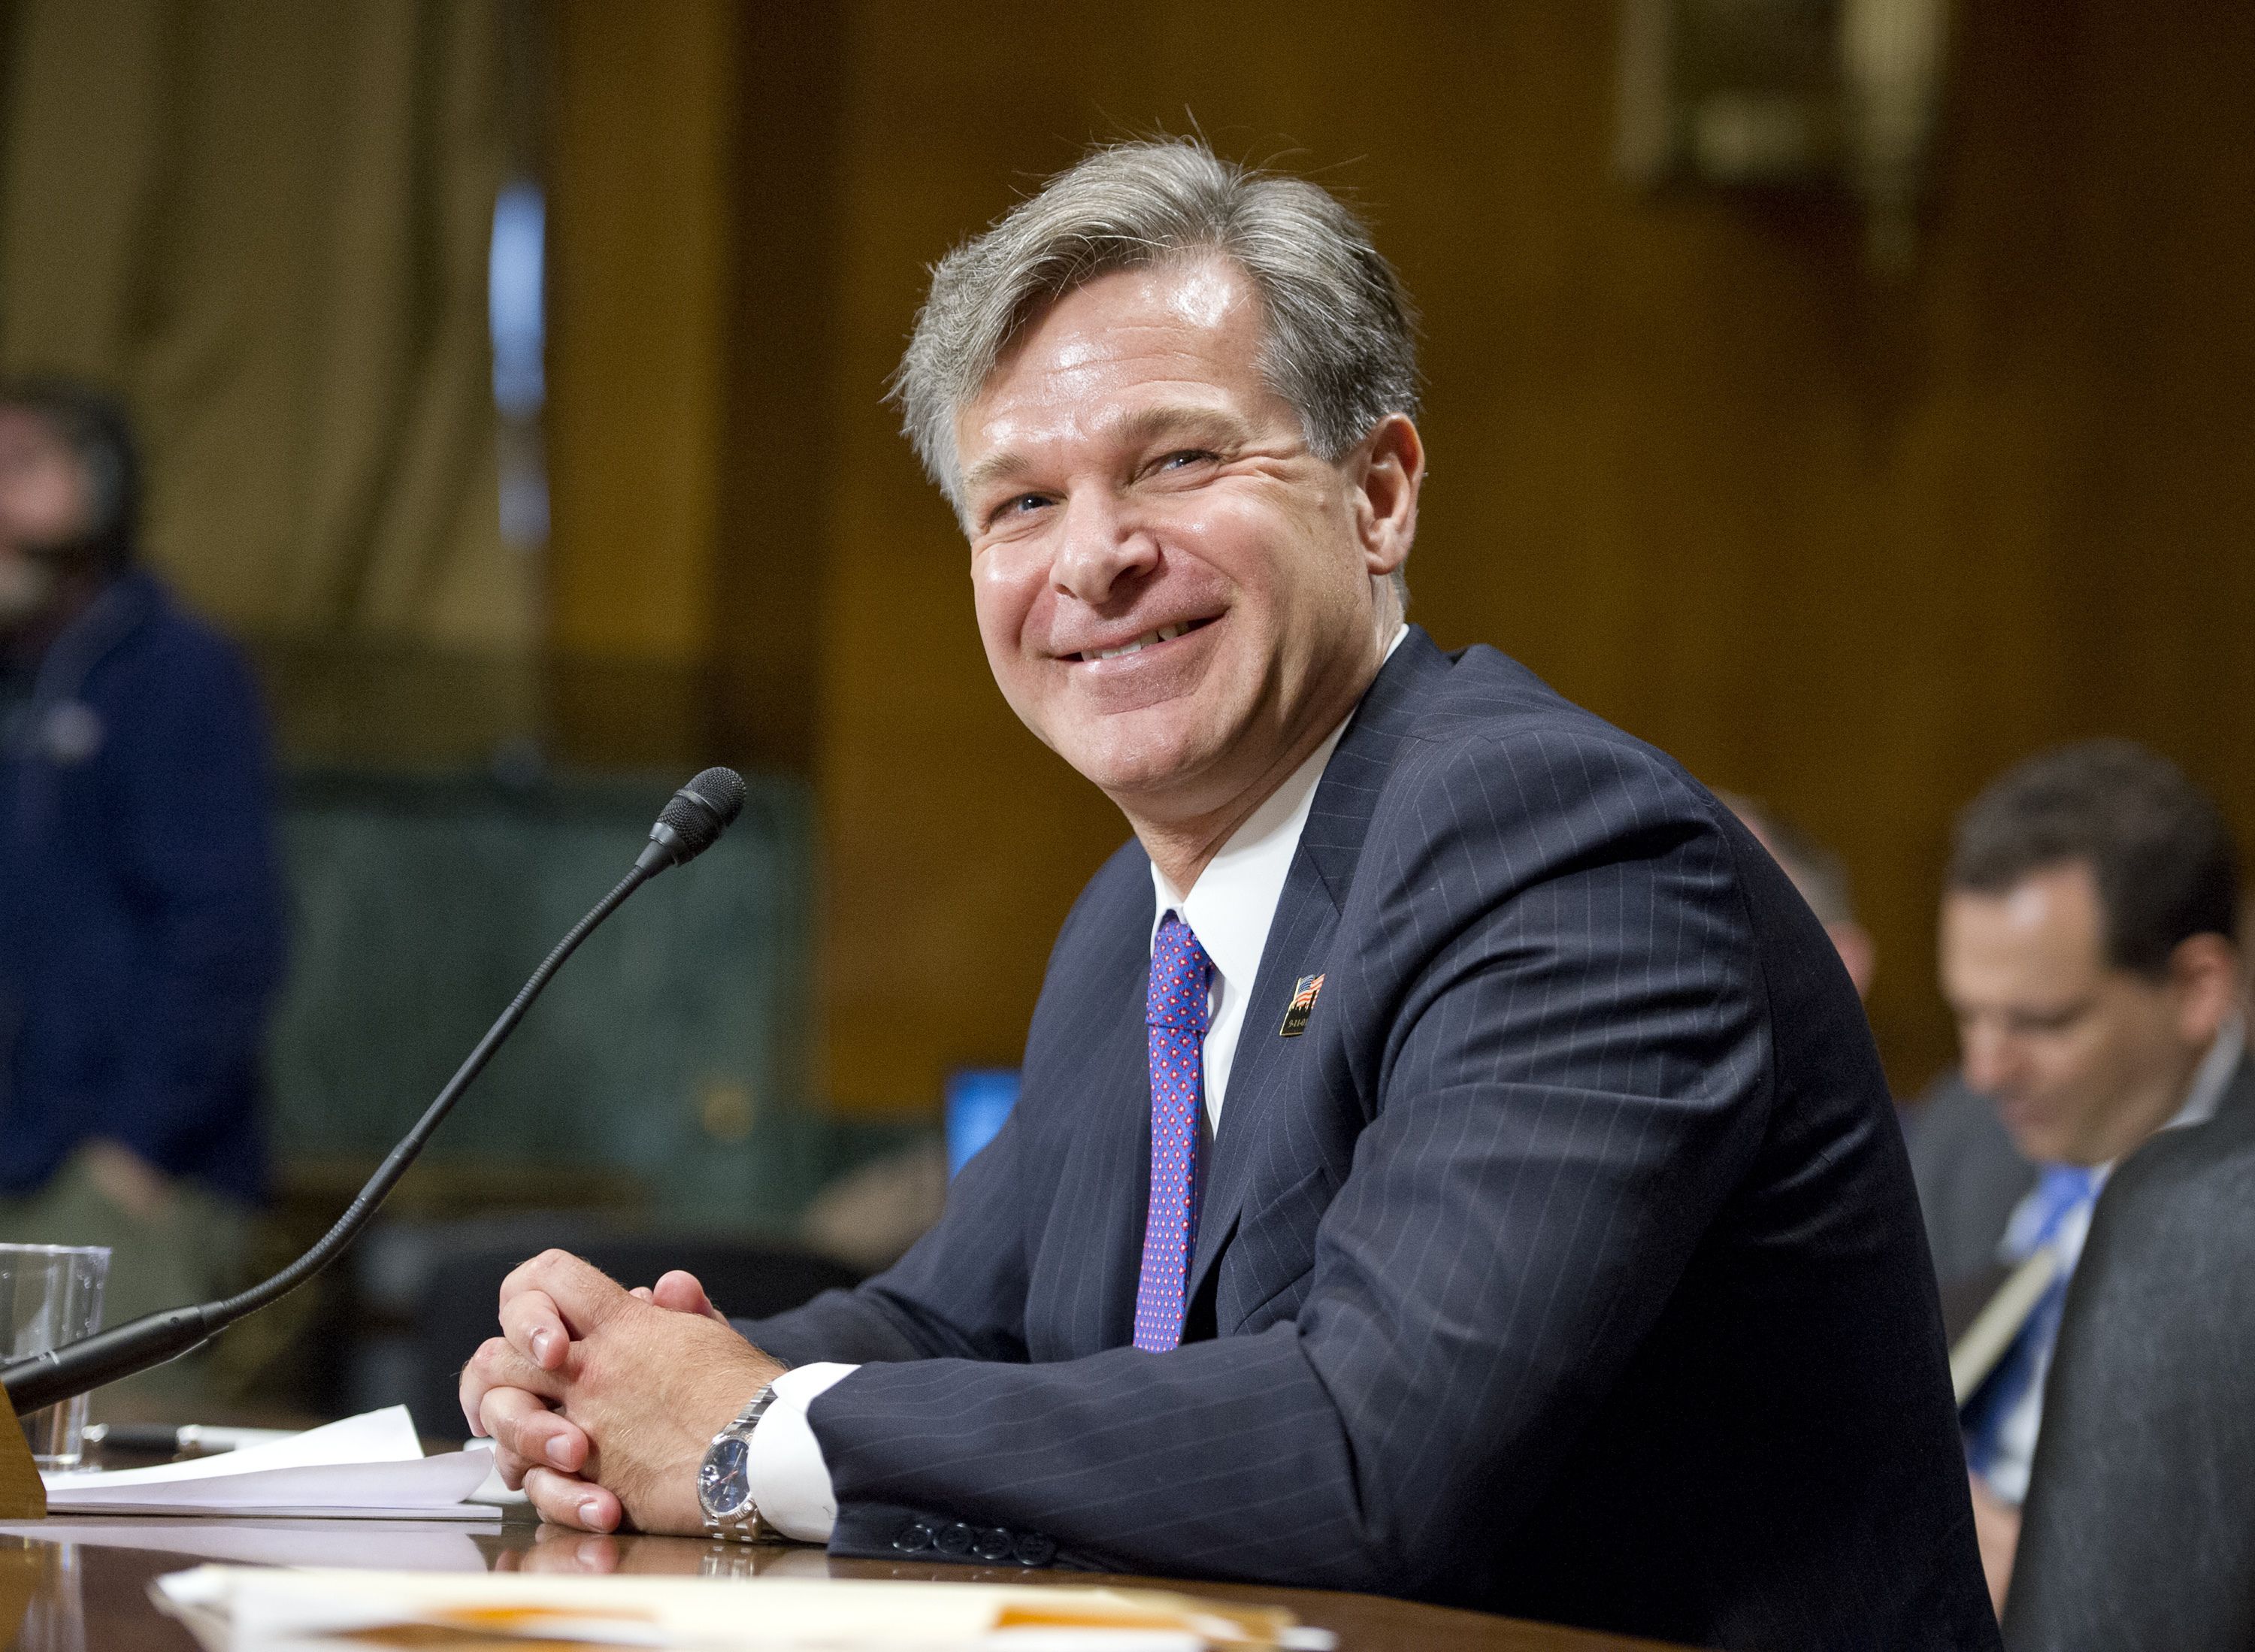 Christopher Wray testifies on his nomination to be Director of the FBI before the U.S. Senate Committee on the Judiciary in Washington, D.C. on July 12, 2017.